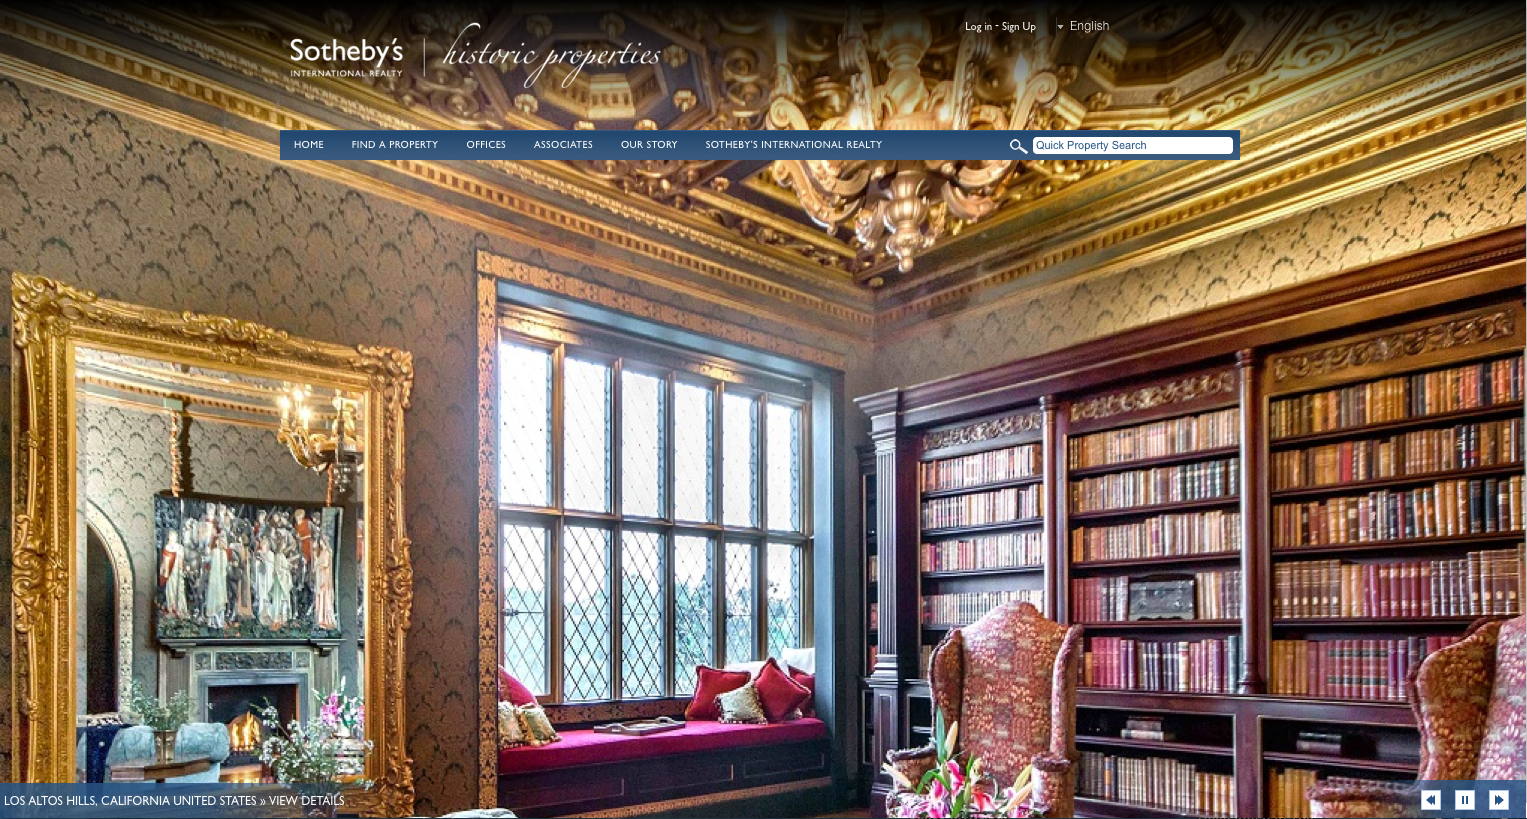 historicpropertysir.com Search for your perfect Historic Property